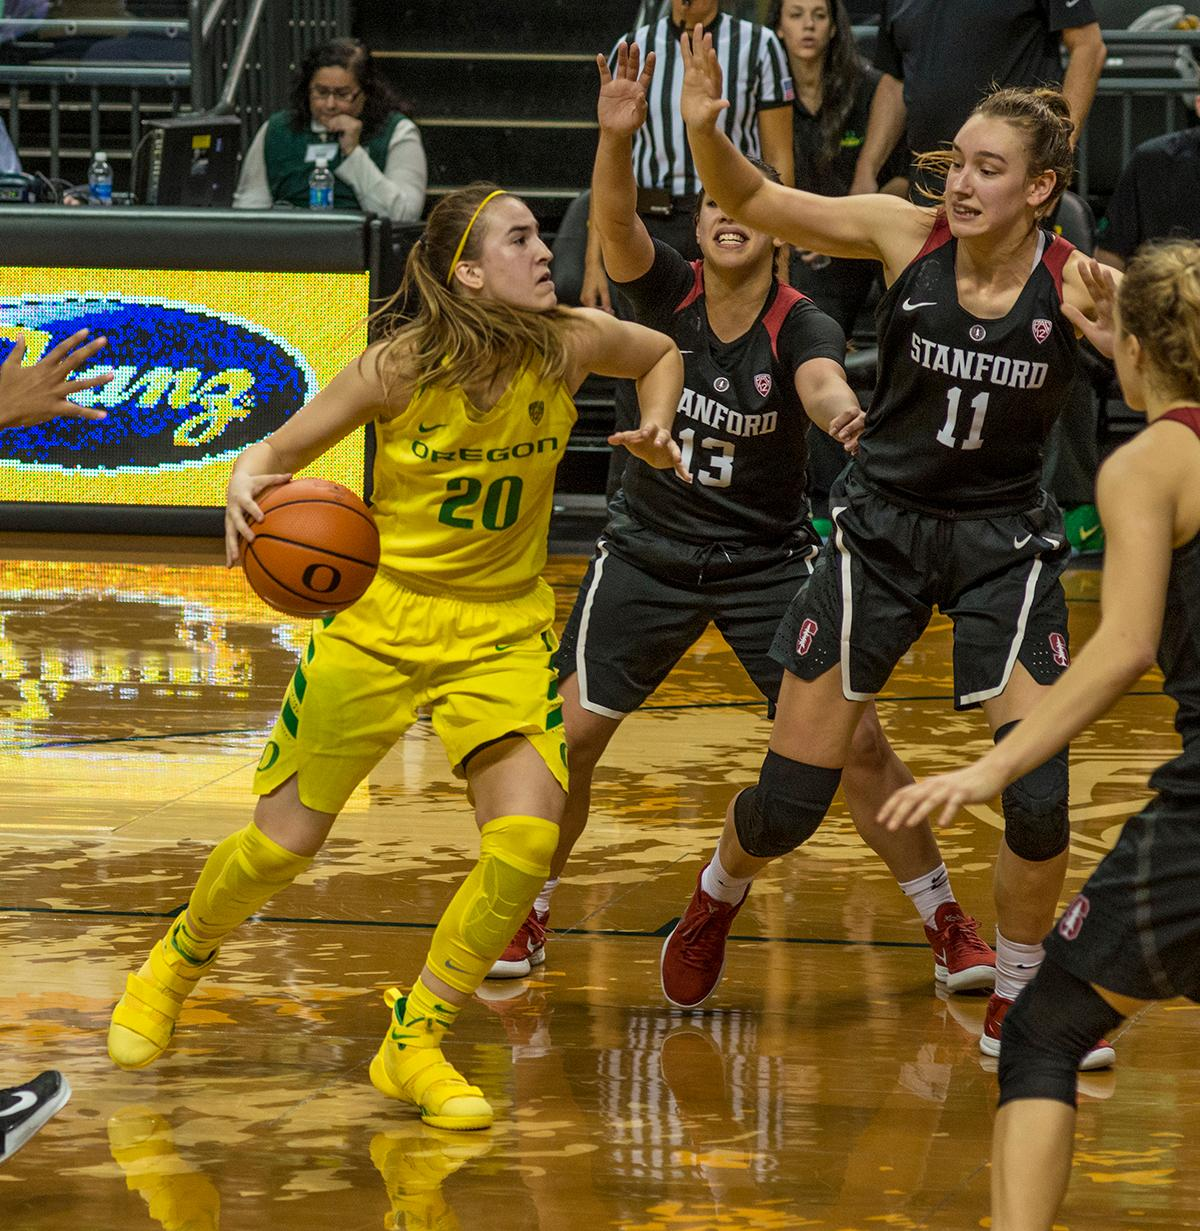 Oregon Ducks Sabrina Ionescu (#20) attempts to drive against the Stanford Cardinal defense. The Stanford Cardinal defeated the Oregon Ducks 78-65 on Sunday afternoon at Matthew Knight Arena. Stanford is now 10-2 in conference play and with this loss the Ducks drop to 10-2. Leading the Stanford Cardinal was Brittany McPhee with 33 points, Alanna Smith with 14 points, and Kiana Williams with 14 points. For the Ducks Sabrina Ionescu led with 22 points, Ruthy Hebard added 16 points, and Satou Sabally put in 14 points. Photo by Dan Morrison, Oregon News Lab